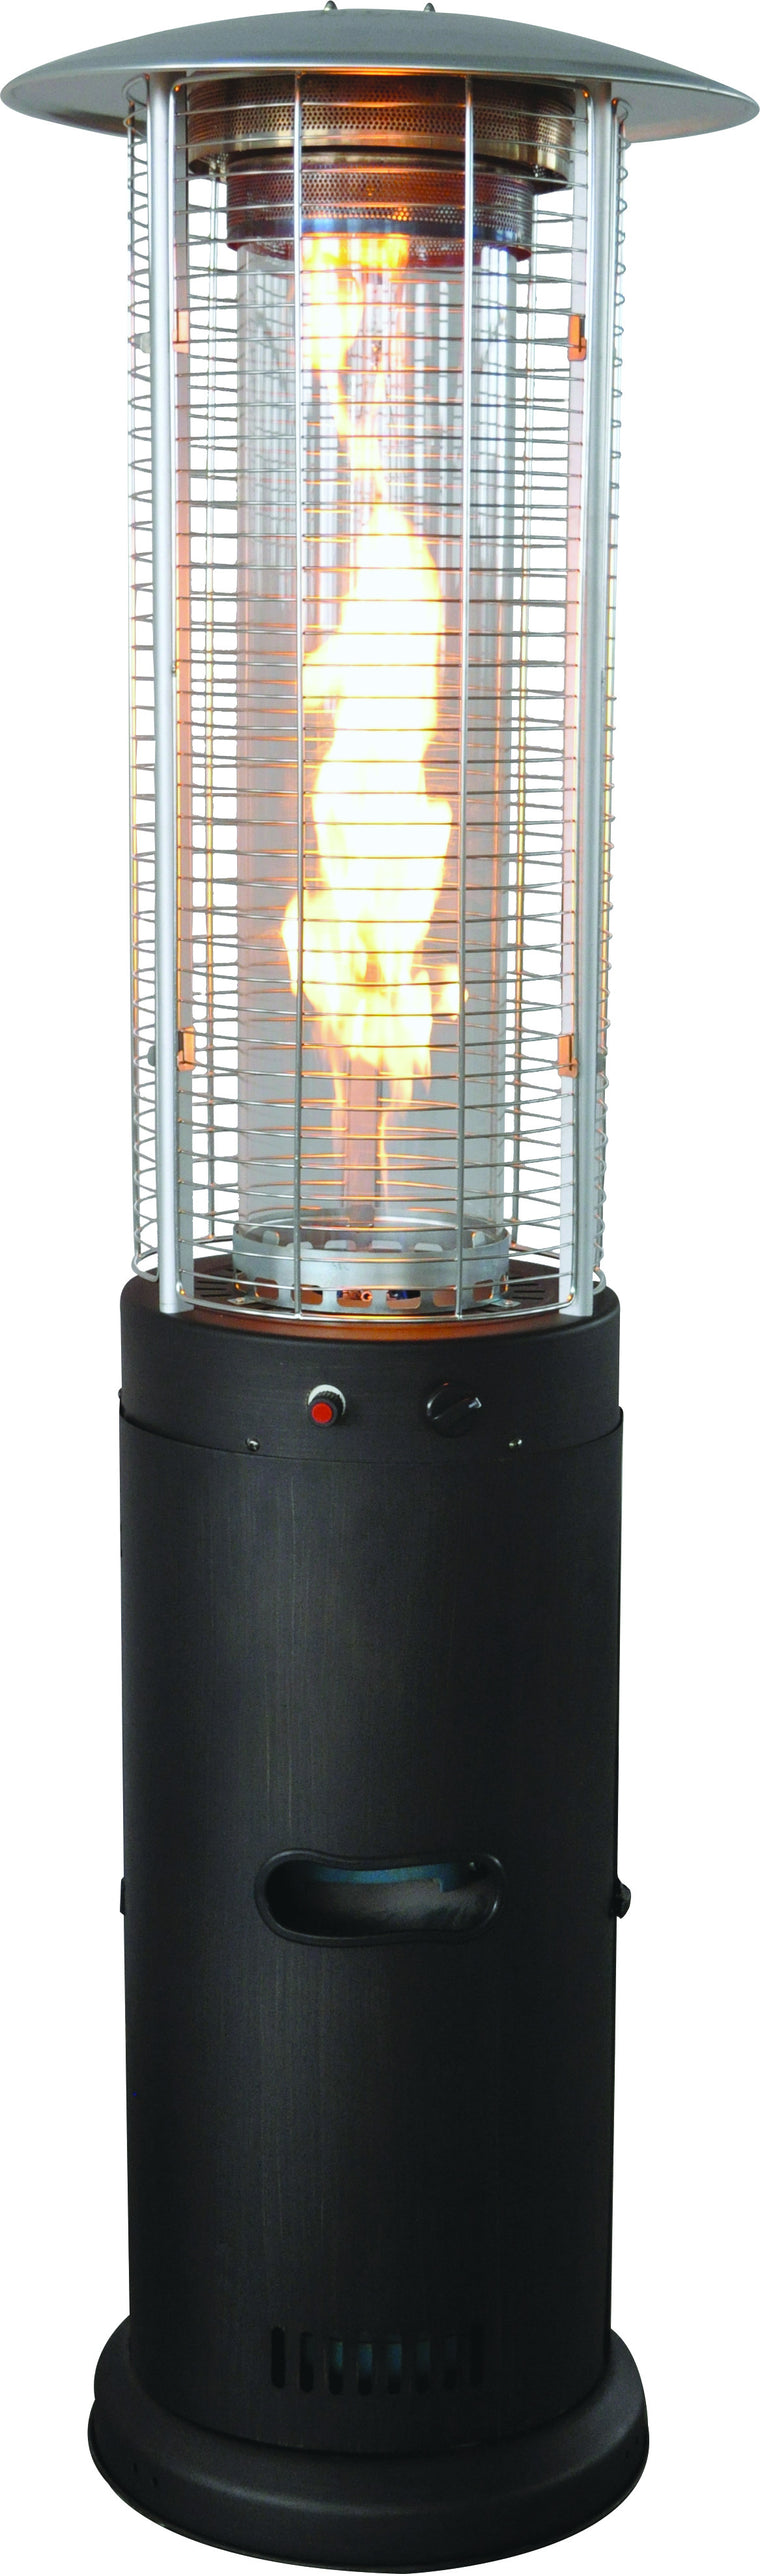 heater sense fire mjjsuab up patio patrofi veloclub stand co